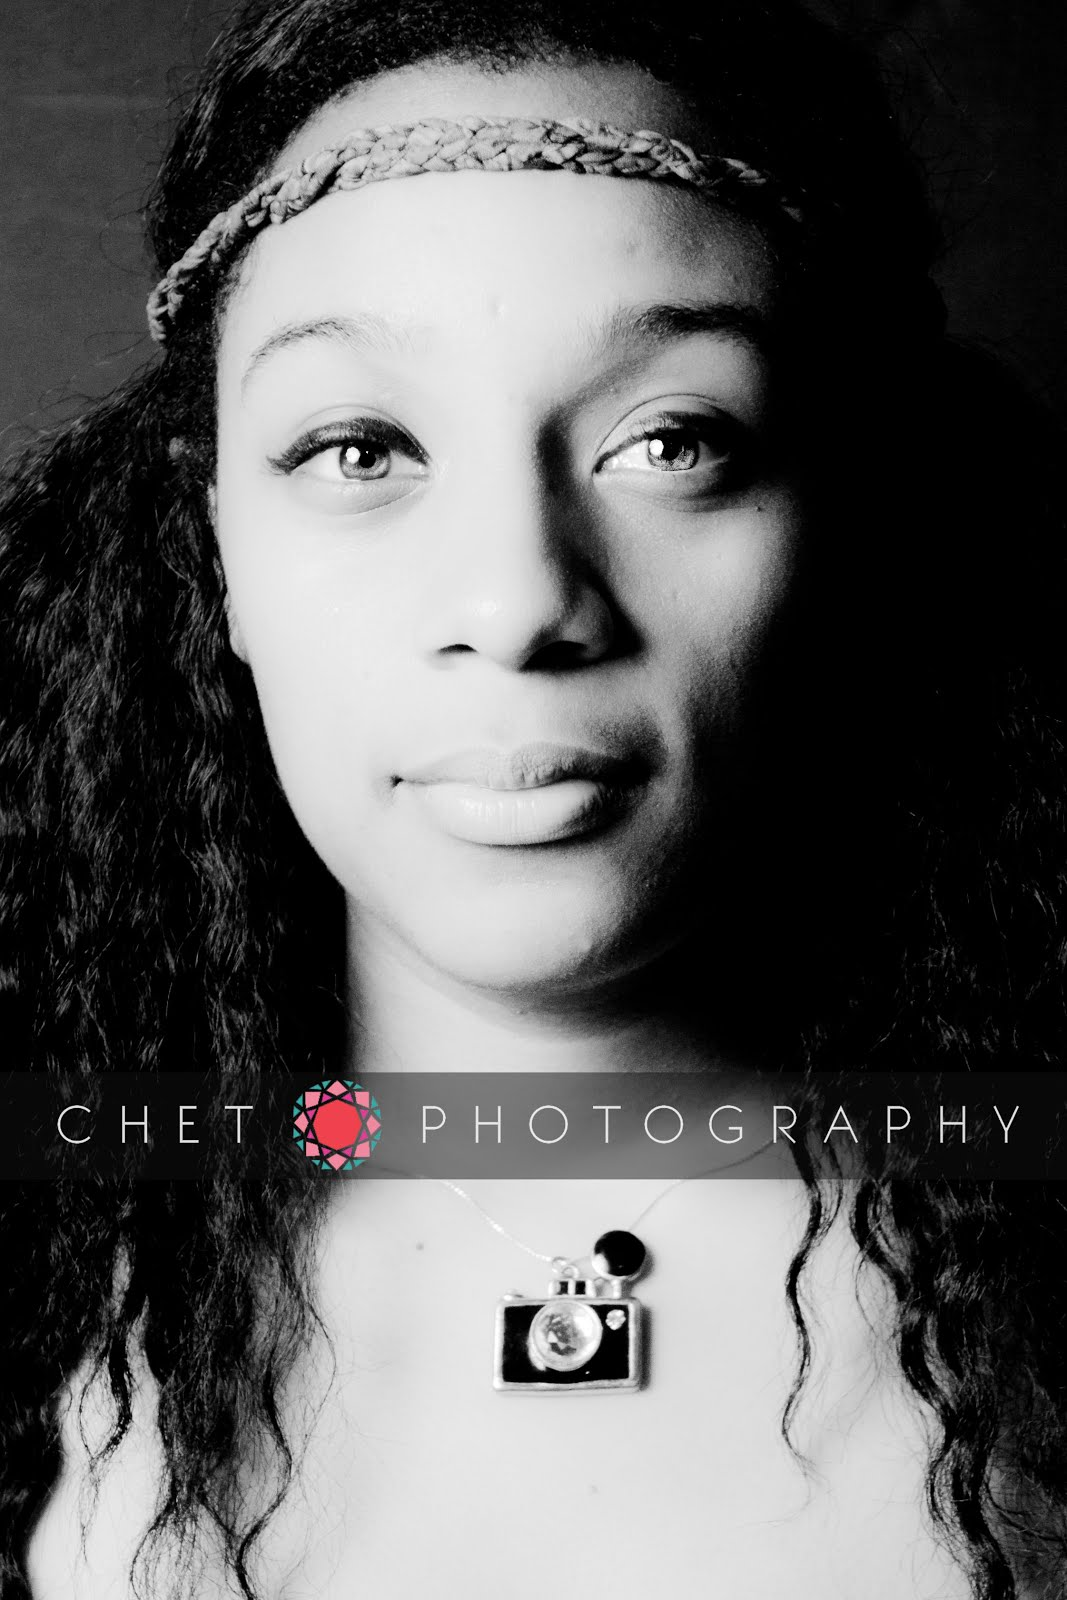 Chet Photography